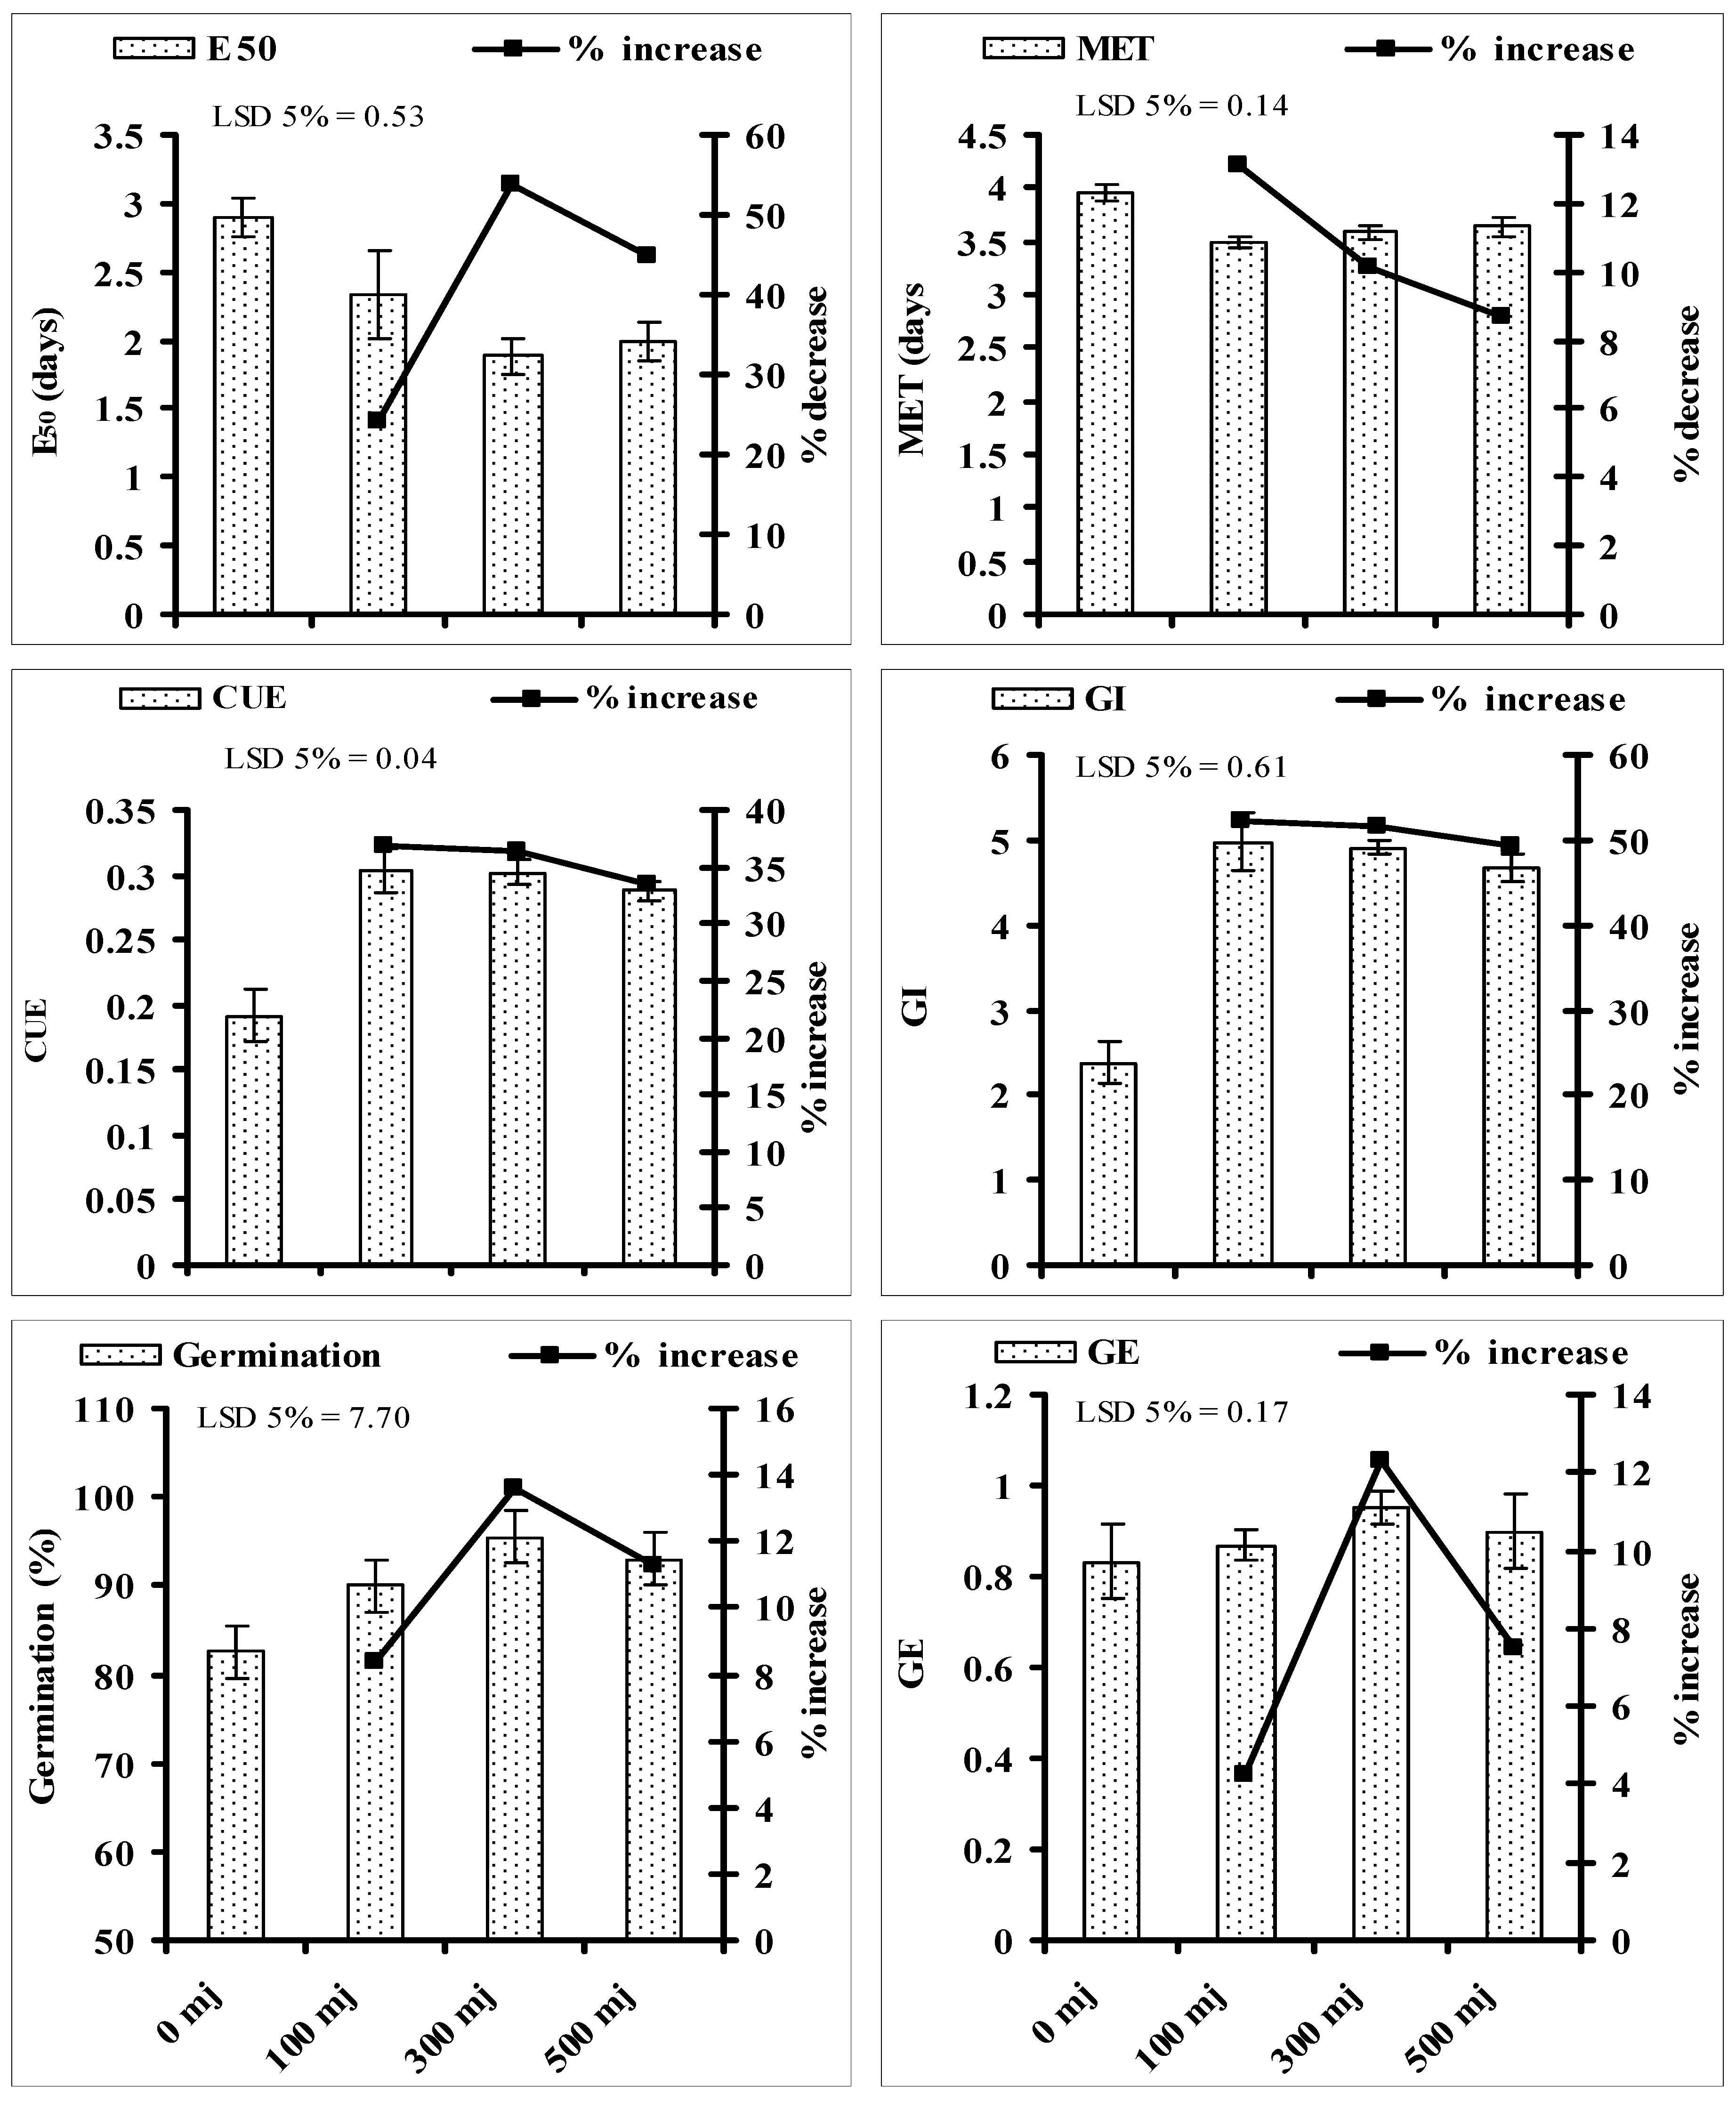 Agronomy Free Full Text Quantitative Determination Of The Effects Of He Ne Laser Irradiation On Seed Thermodynamics Germination Attributes And Metabolites Of Safflower Carthamus Tinctorius L In Relation With The Activities Of